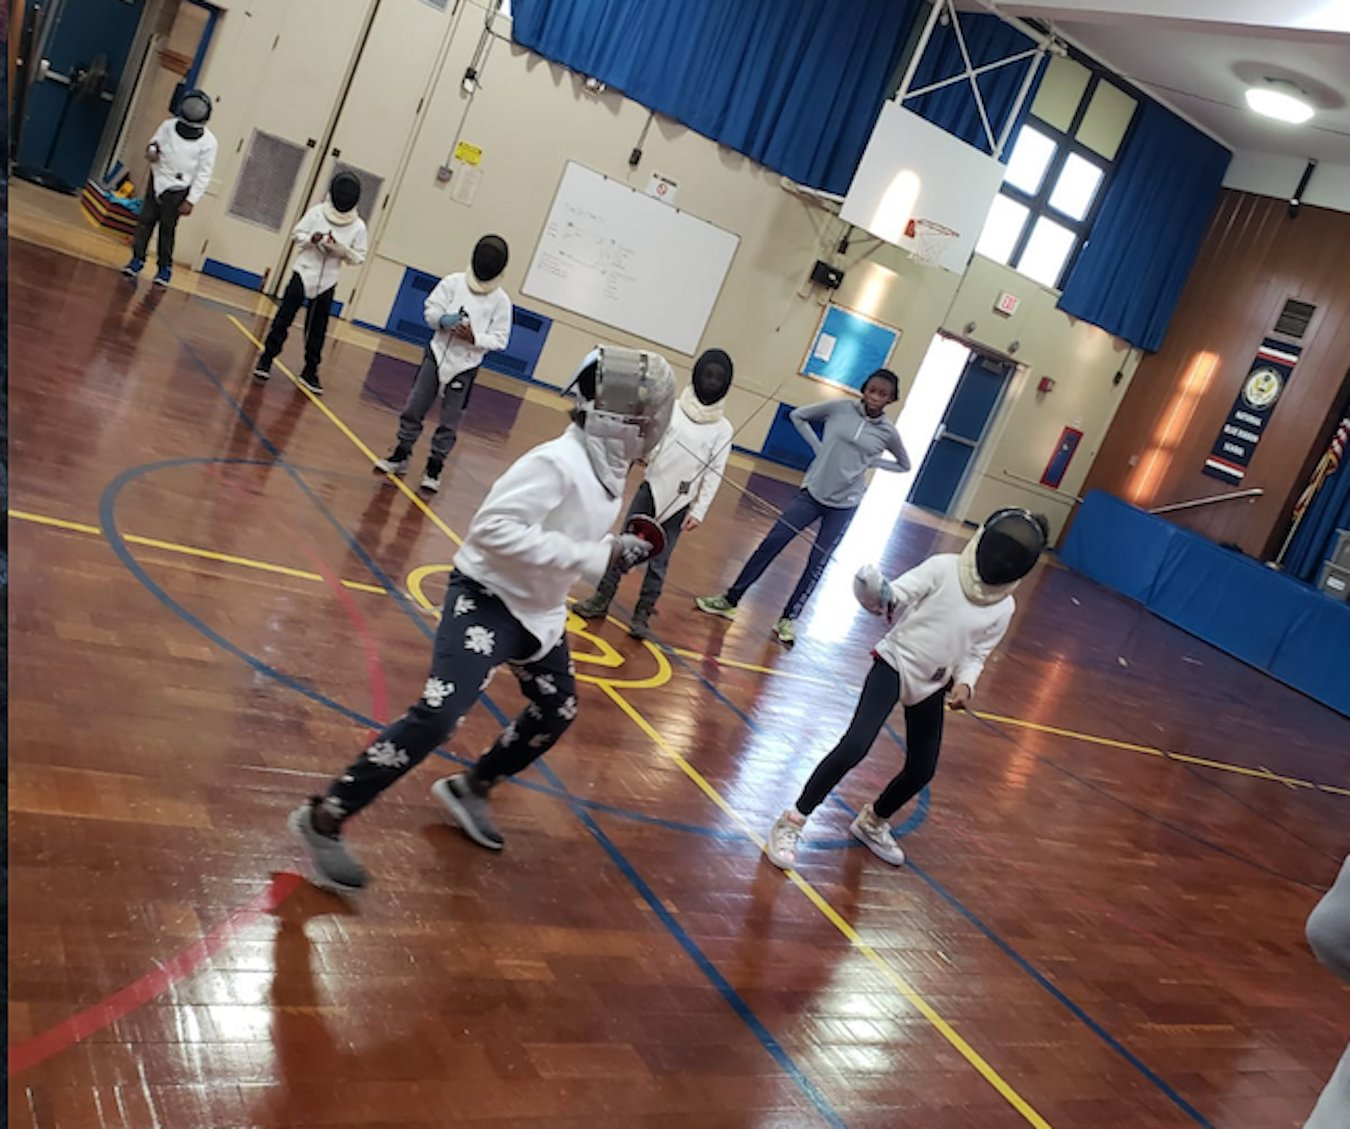 Students took turns lunging at their opponents, working on footwork and striking techniques.